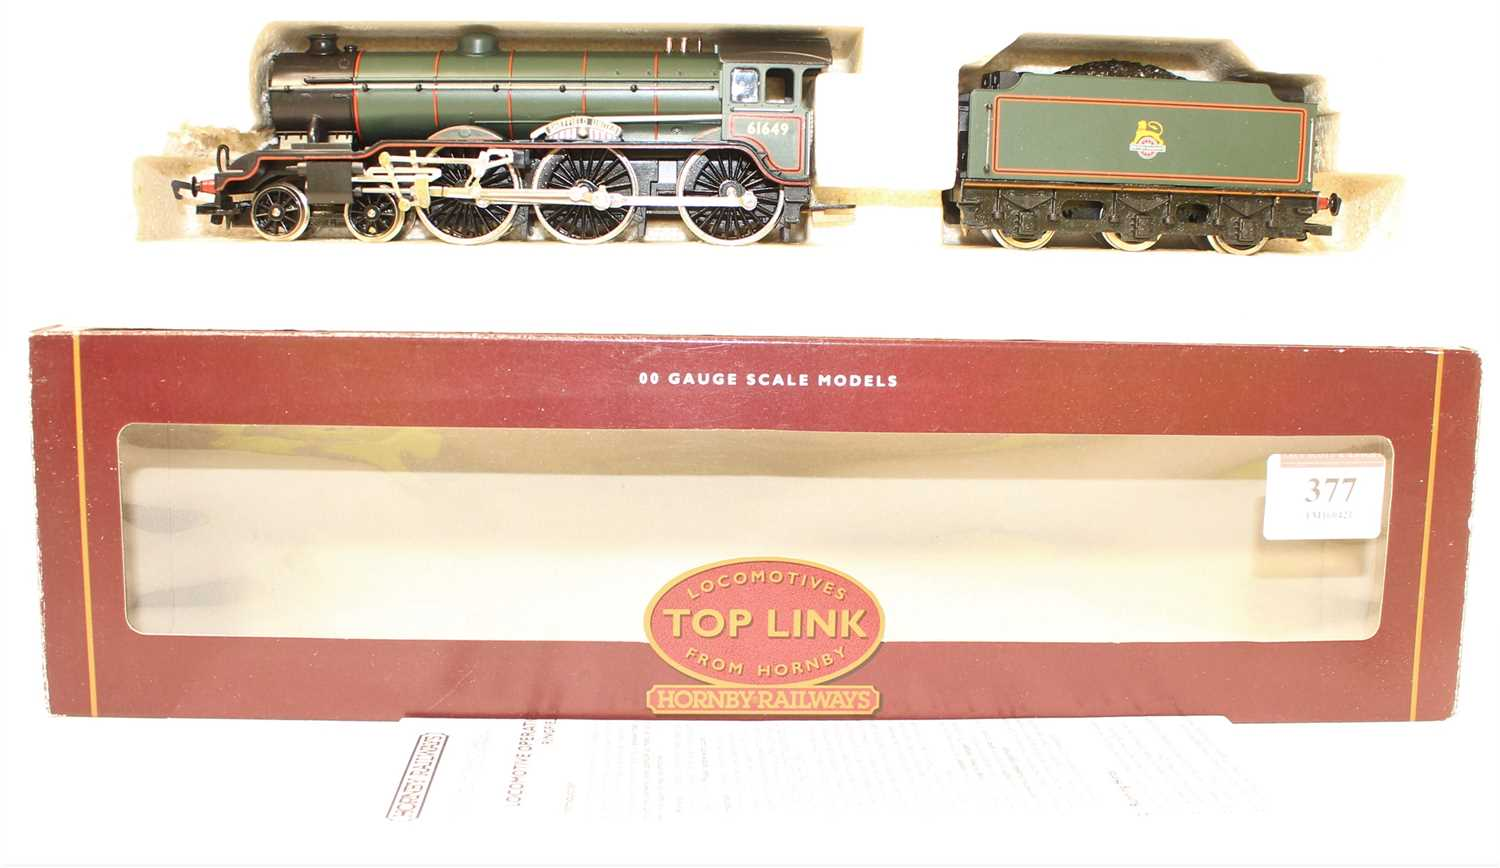 Lot 377 - Hornby Top Link Loco and Tender R2038D B17/4...